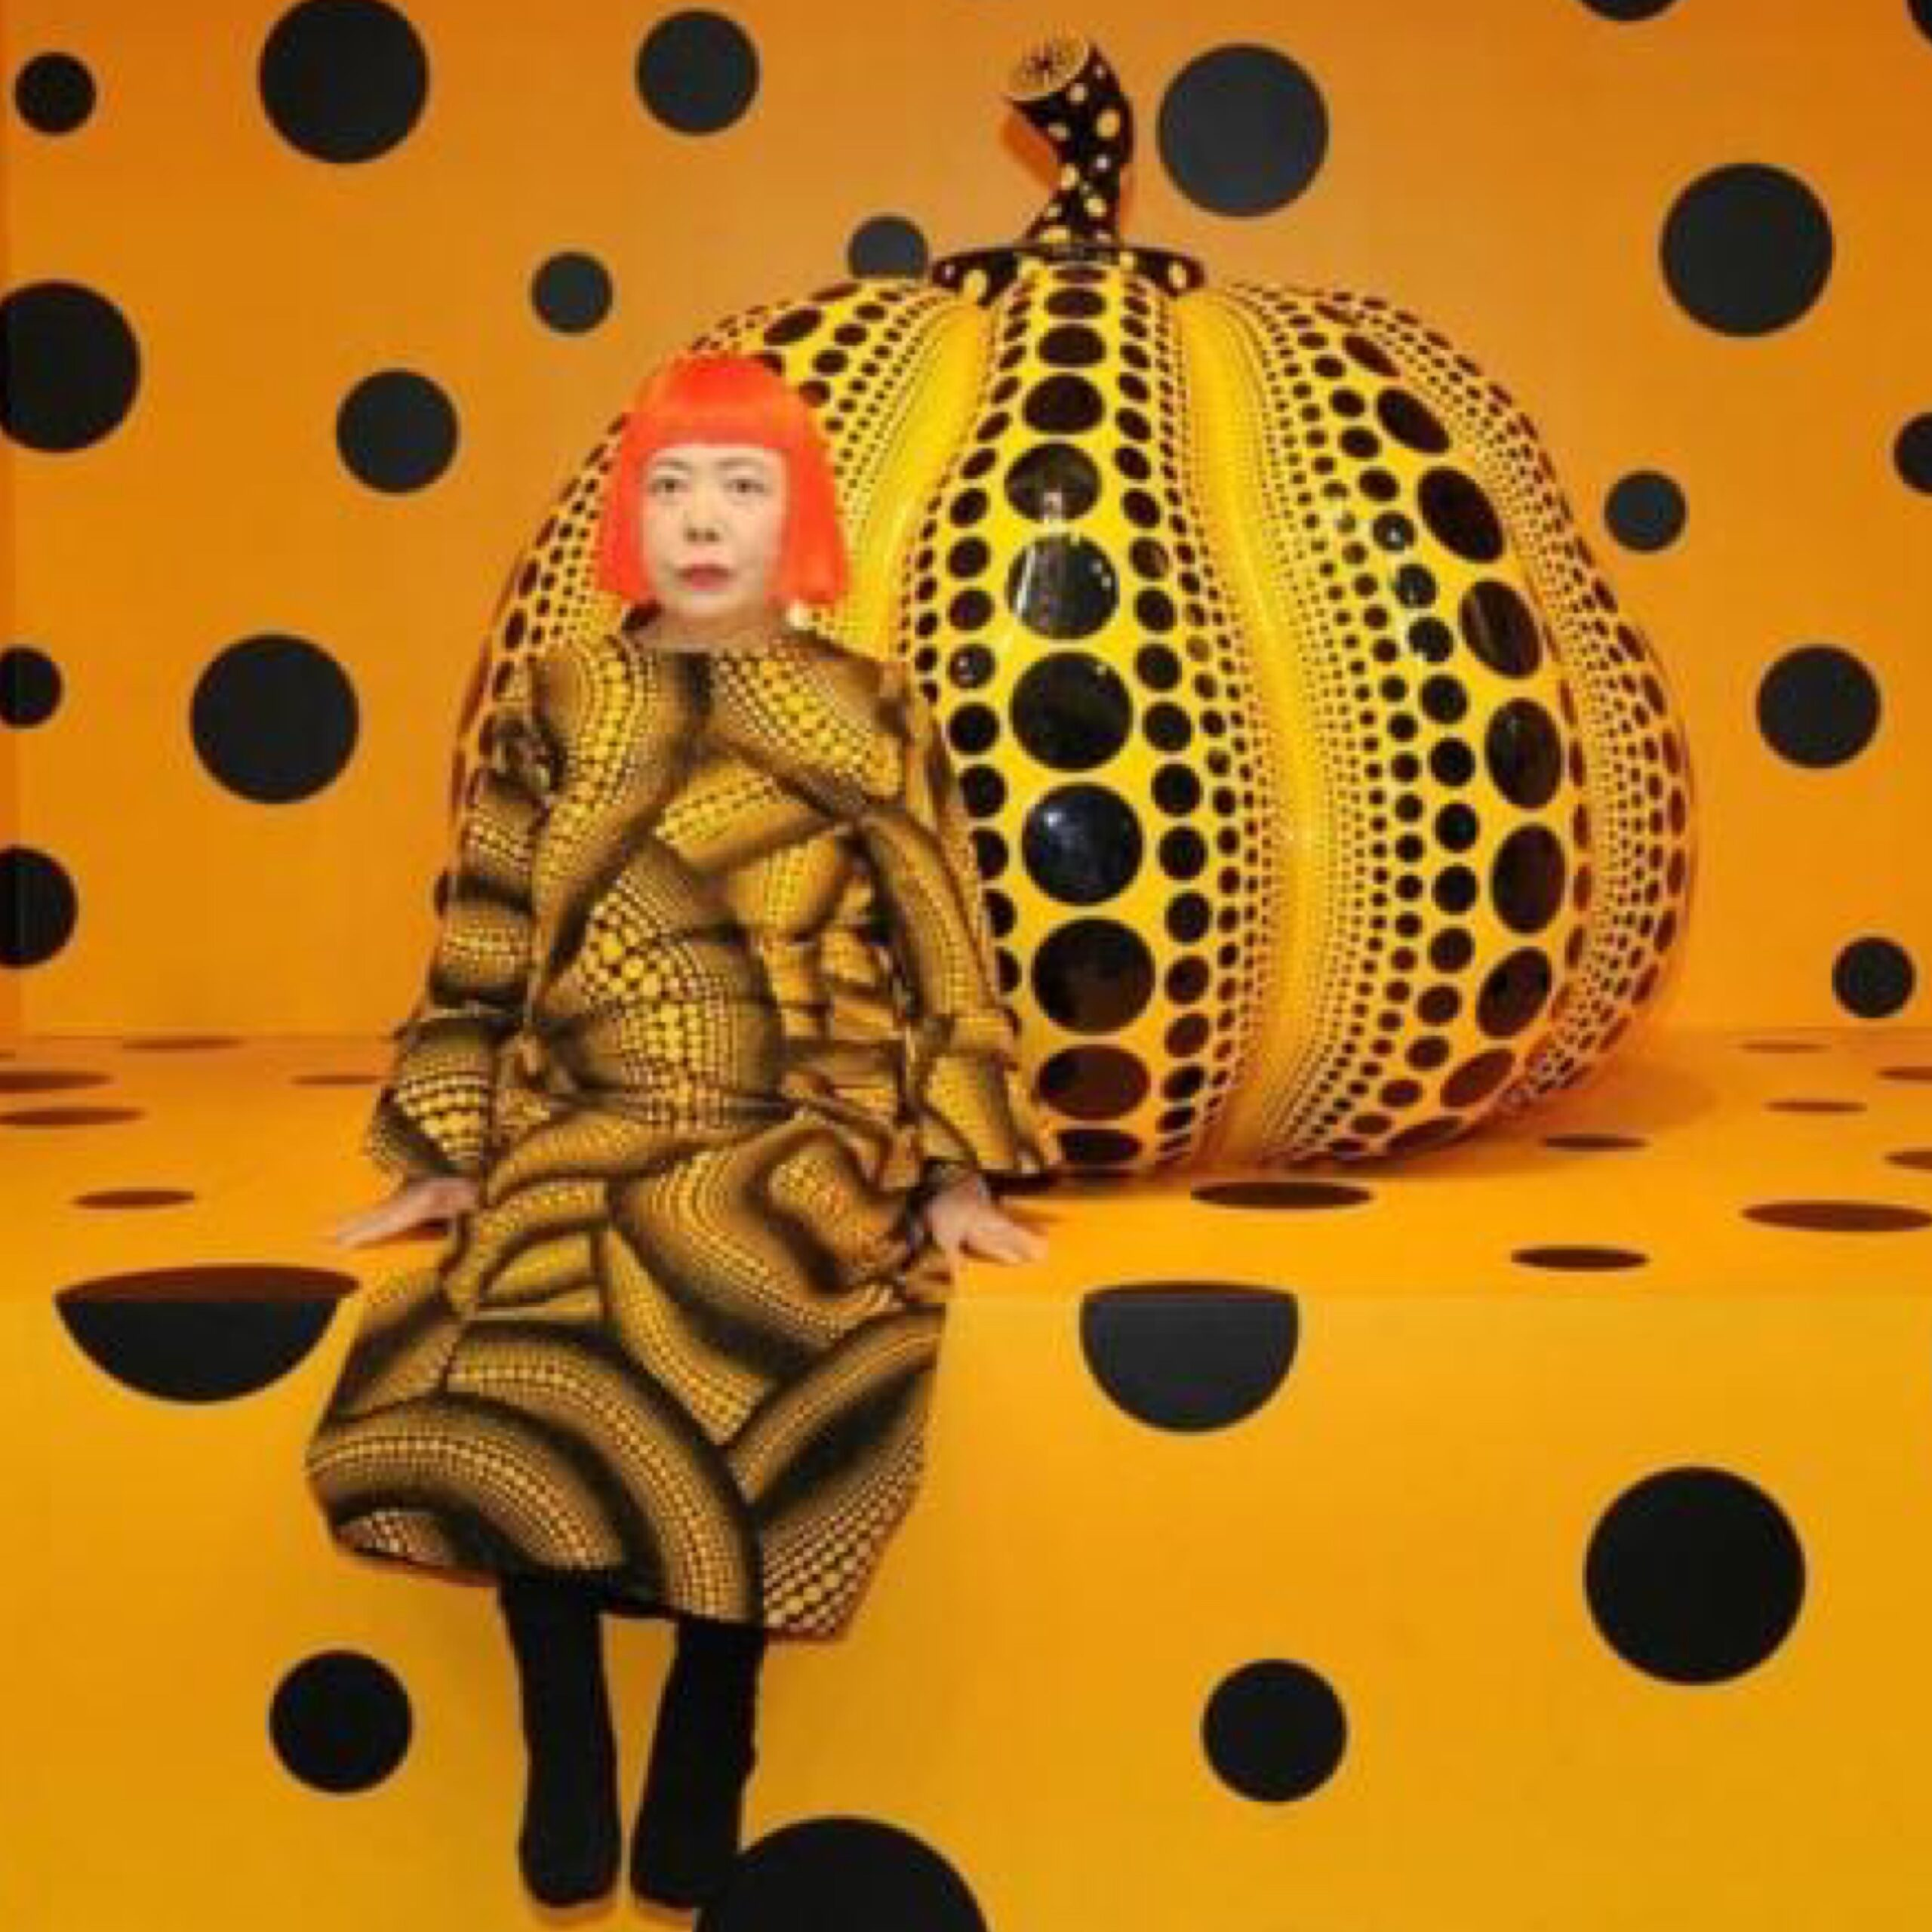 Kusama with Pumpkin, 2010 for 360 Magazine, Courtesy of Ota Fine Arts, David Zwirner, Victoria Miro